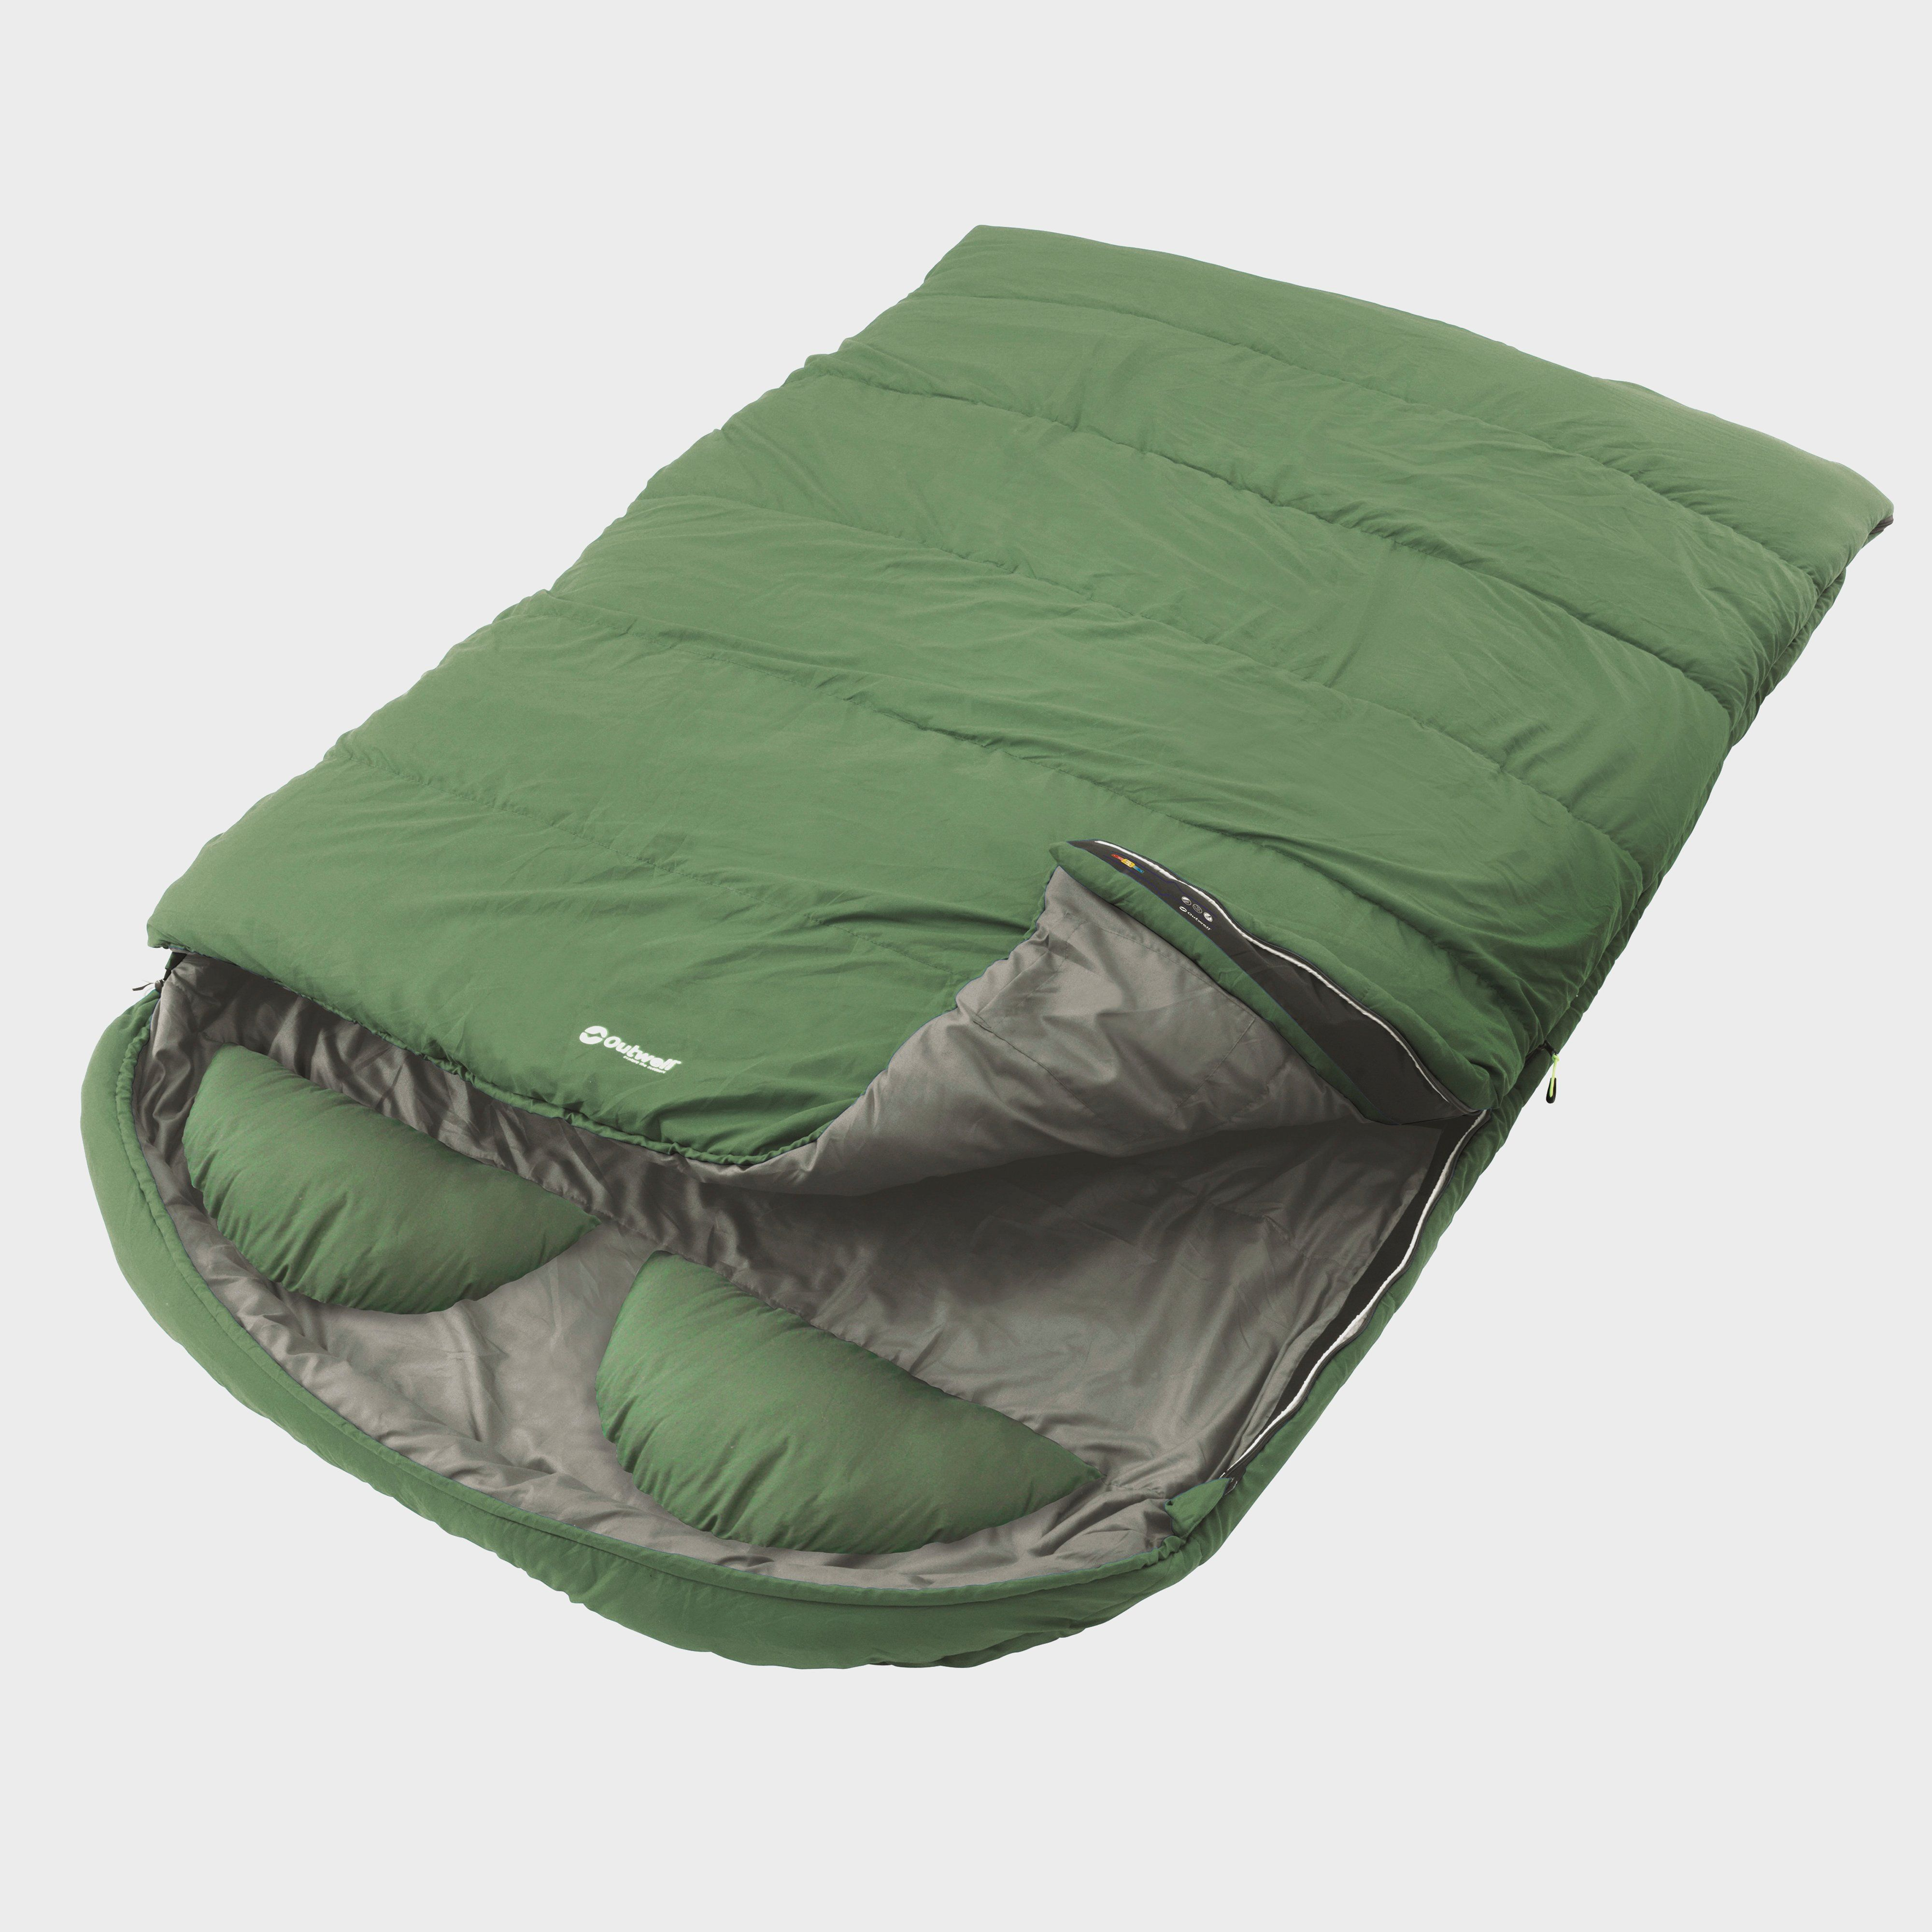 OUTWELL Coram Lux Double Sleeping Bag